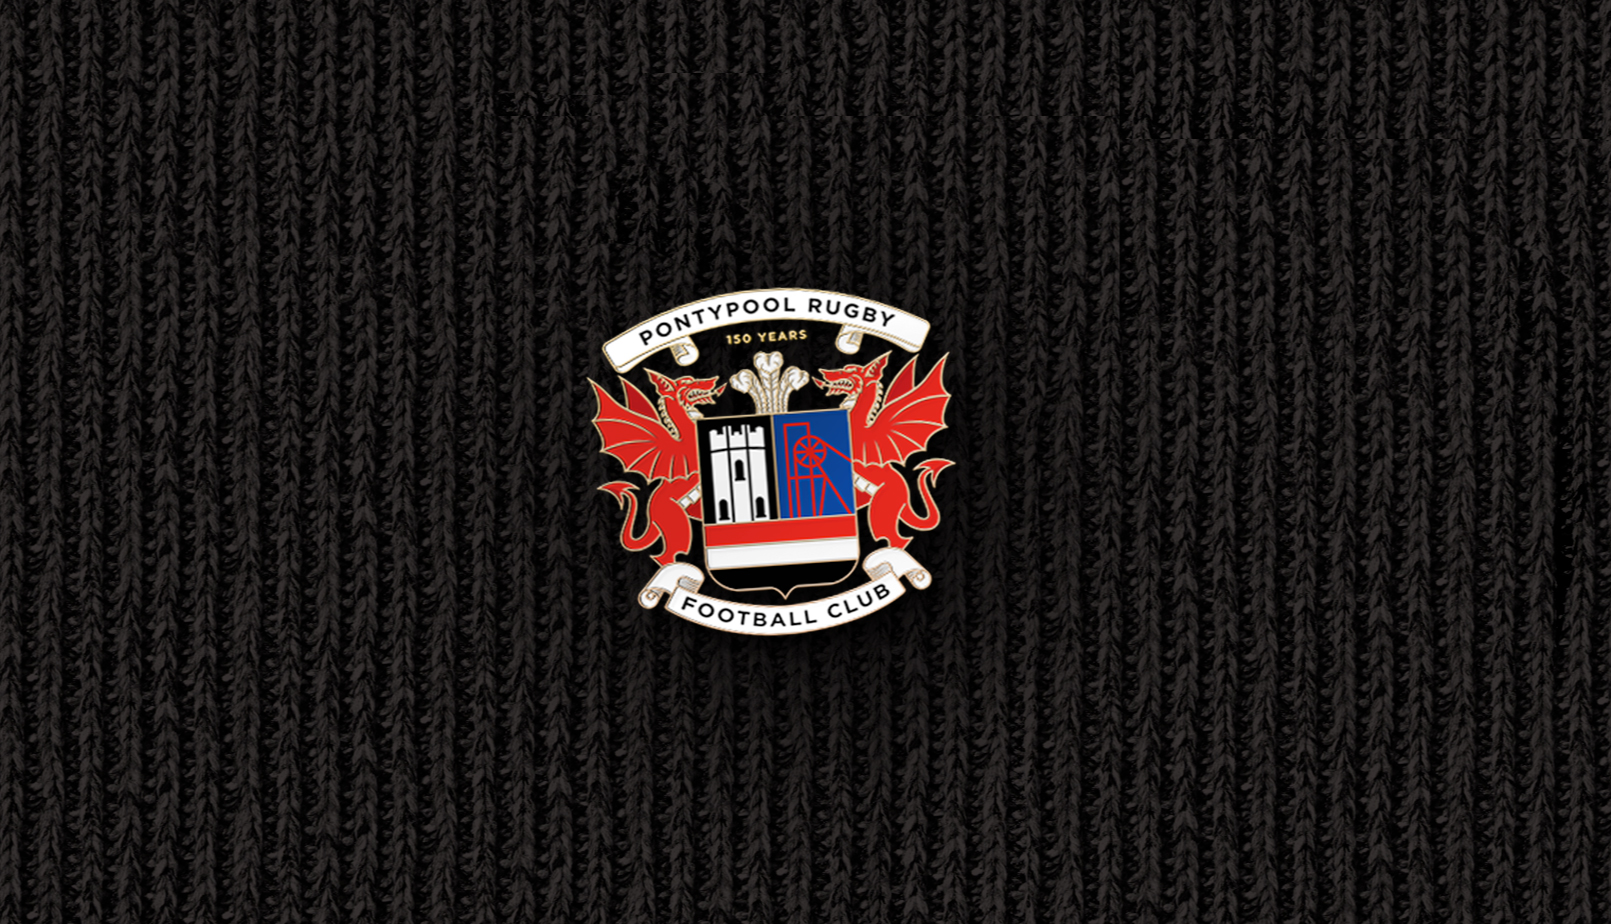 Pontypool RFC 150 Year logo design on a pin badge